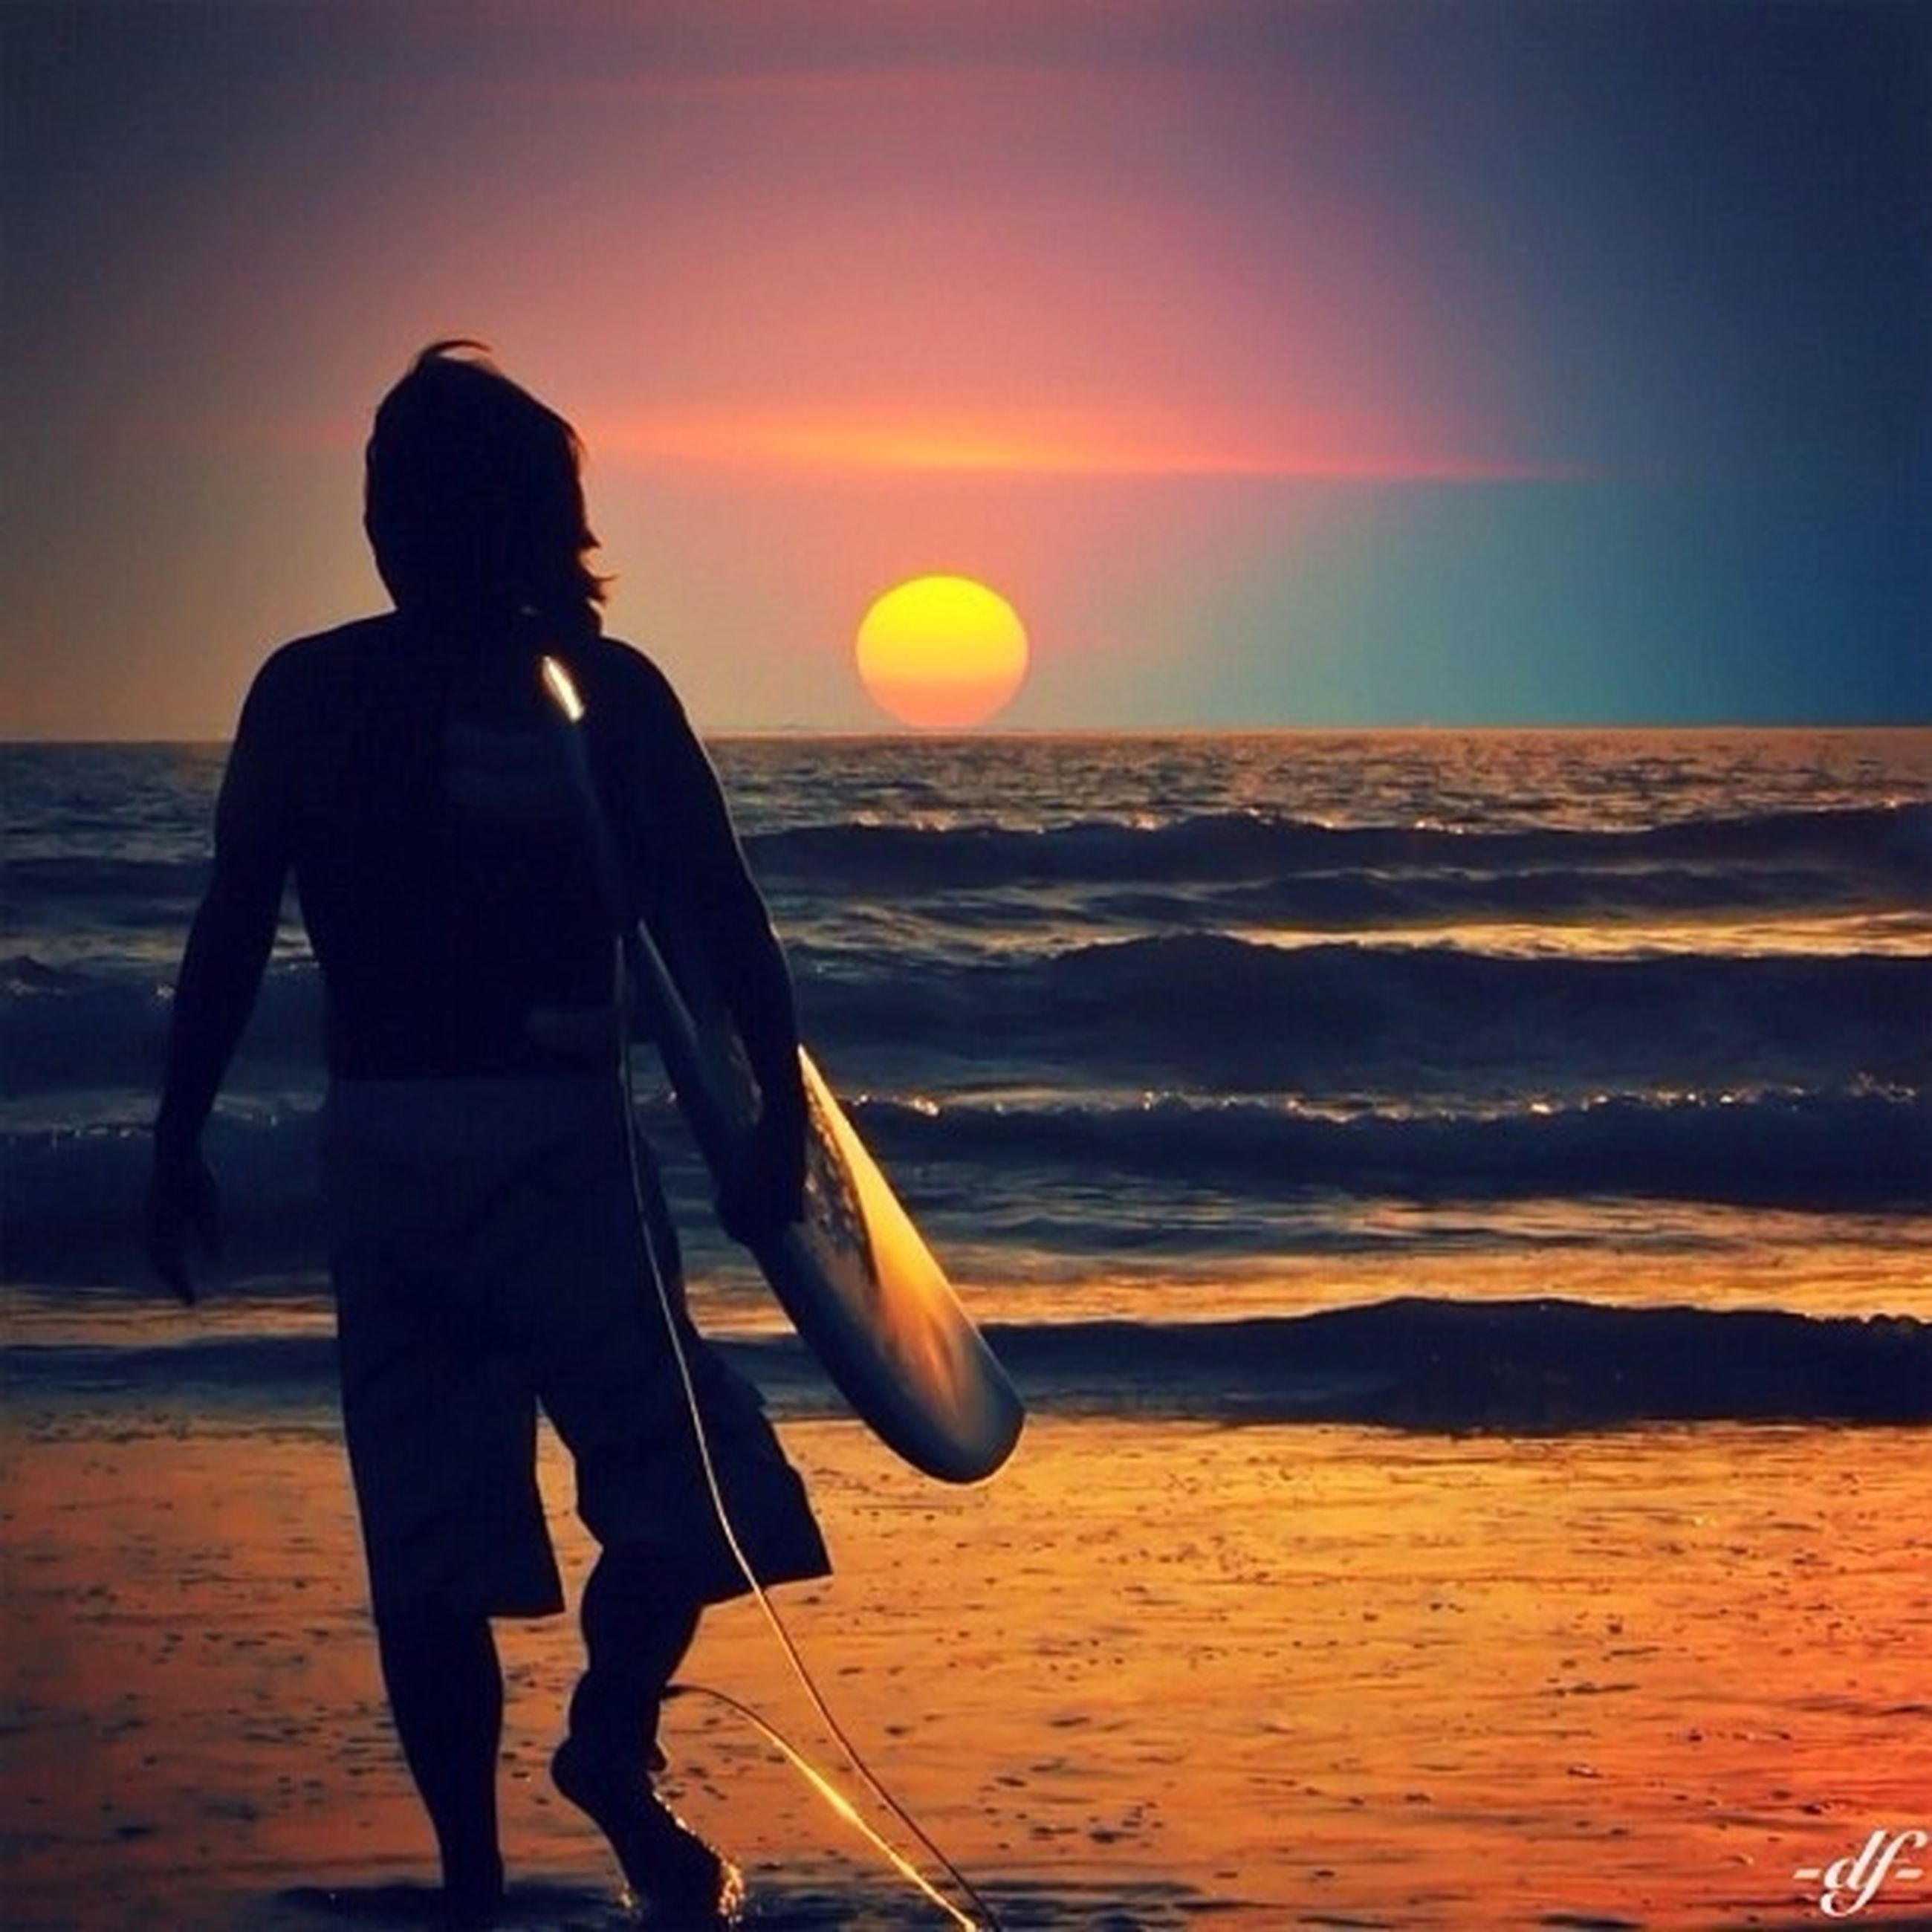 sunset, sea, horizon over water, water, orange color, silhouette, lifestyles, beach, scenics, standing, leisure activity, beauty in nature, sun, sky, tranquil scene, tranquility, idyllic, rear view